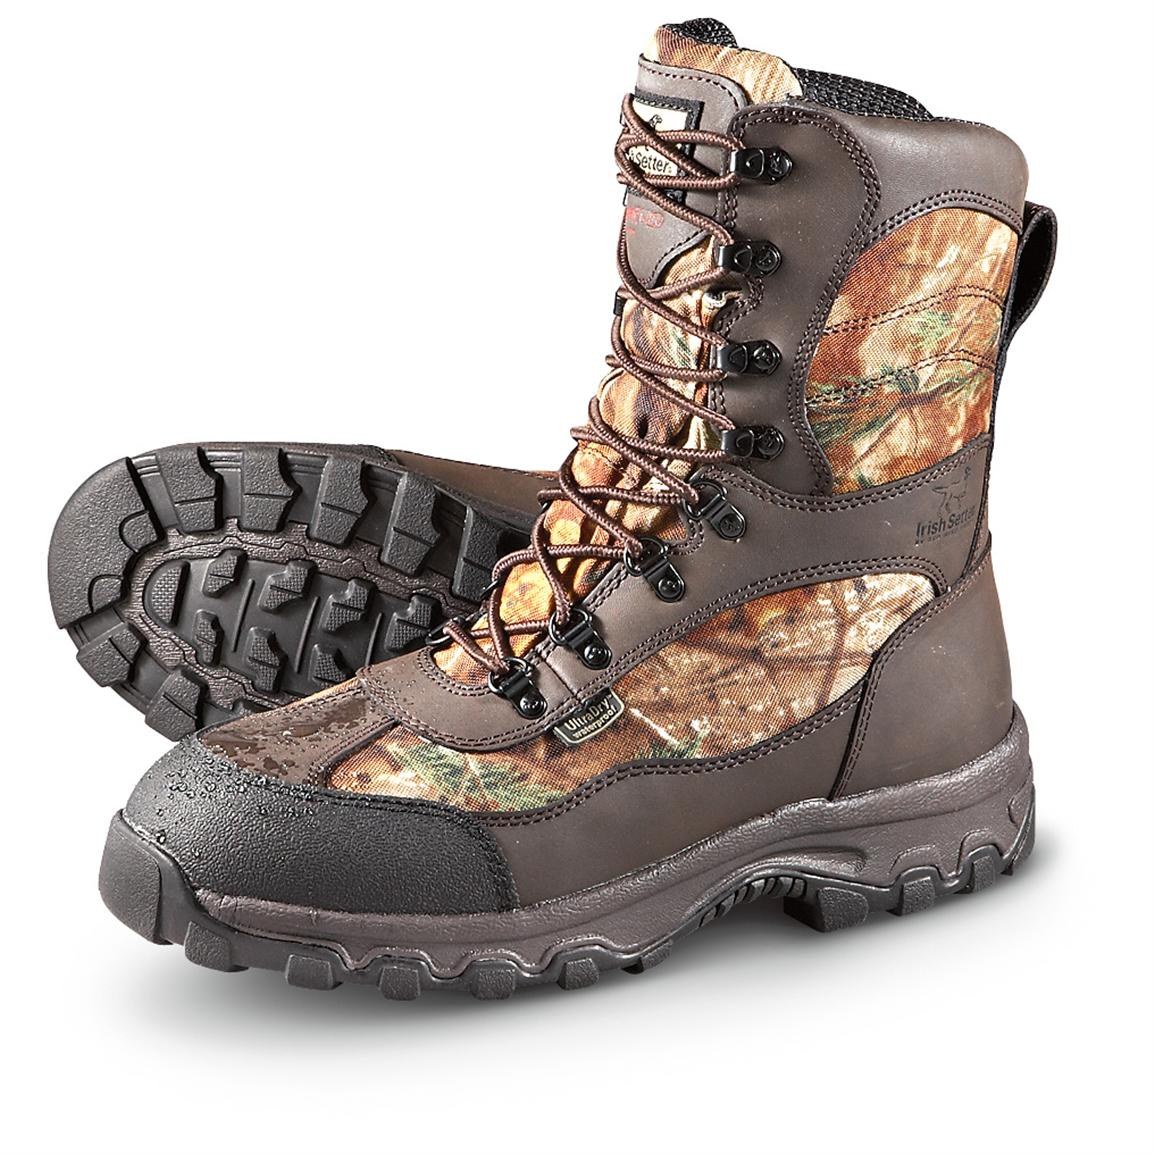 Men's Irish Setter® 9 inch Waterproof 600 grams Thinsulate™ Ultra Insulation Trail Phantom Boots, Realtree® AP™